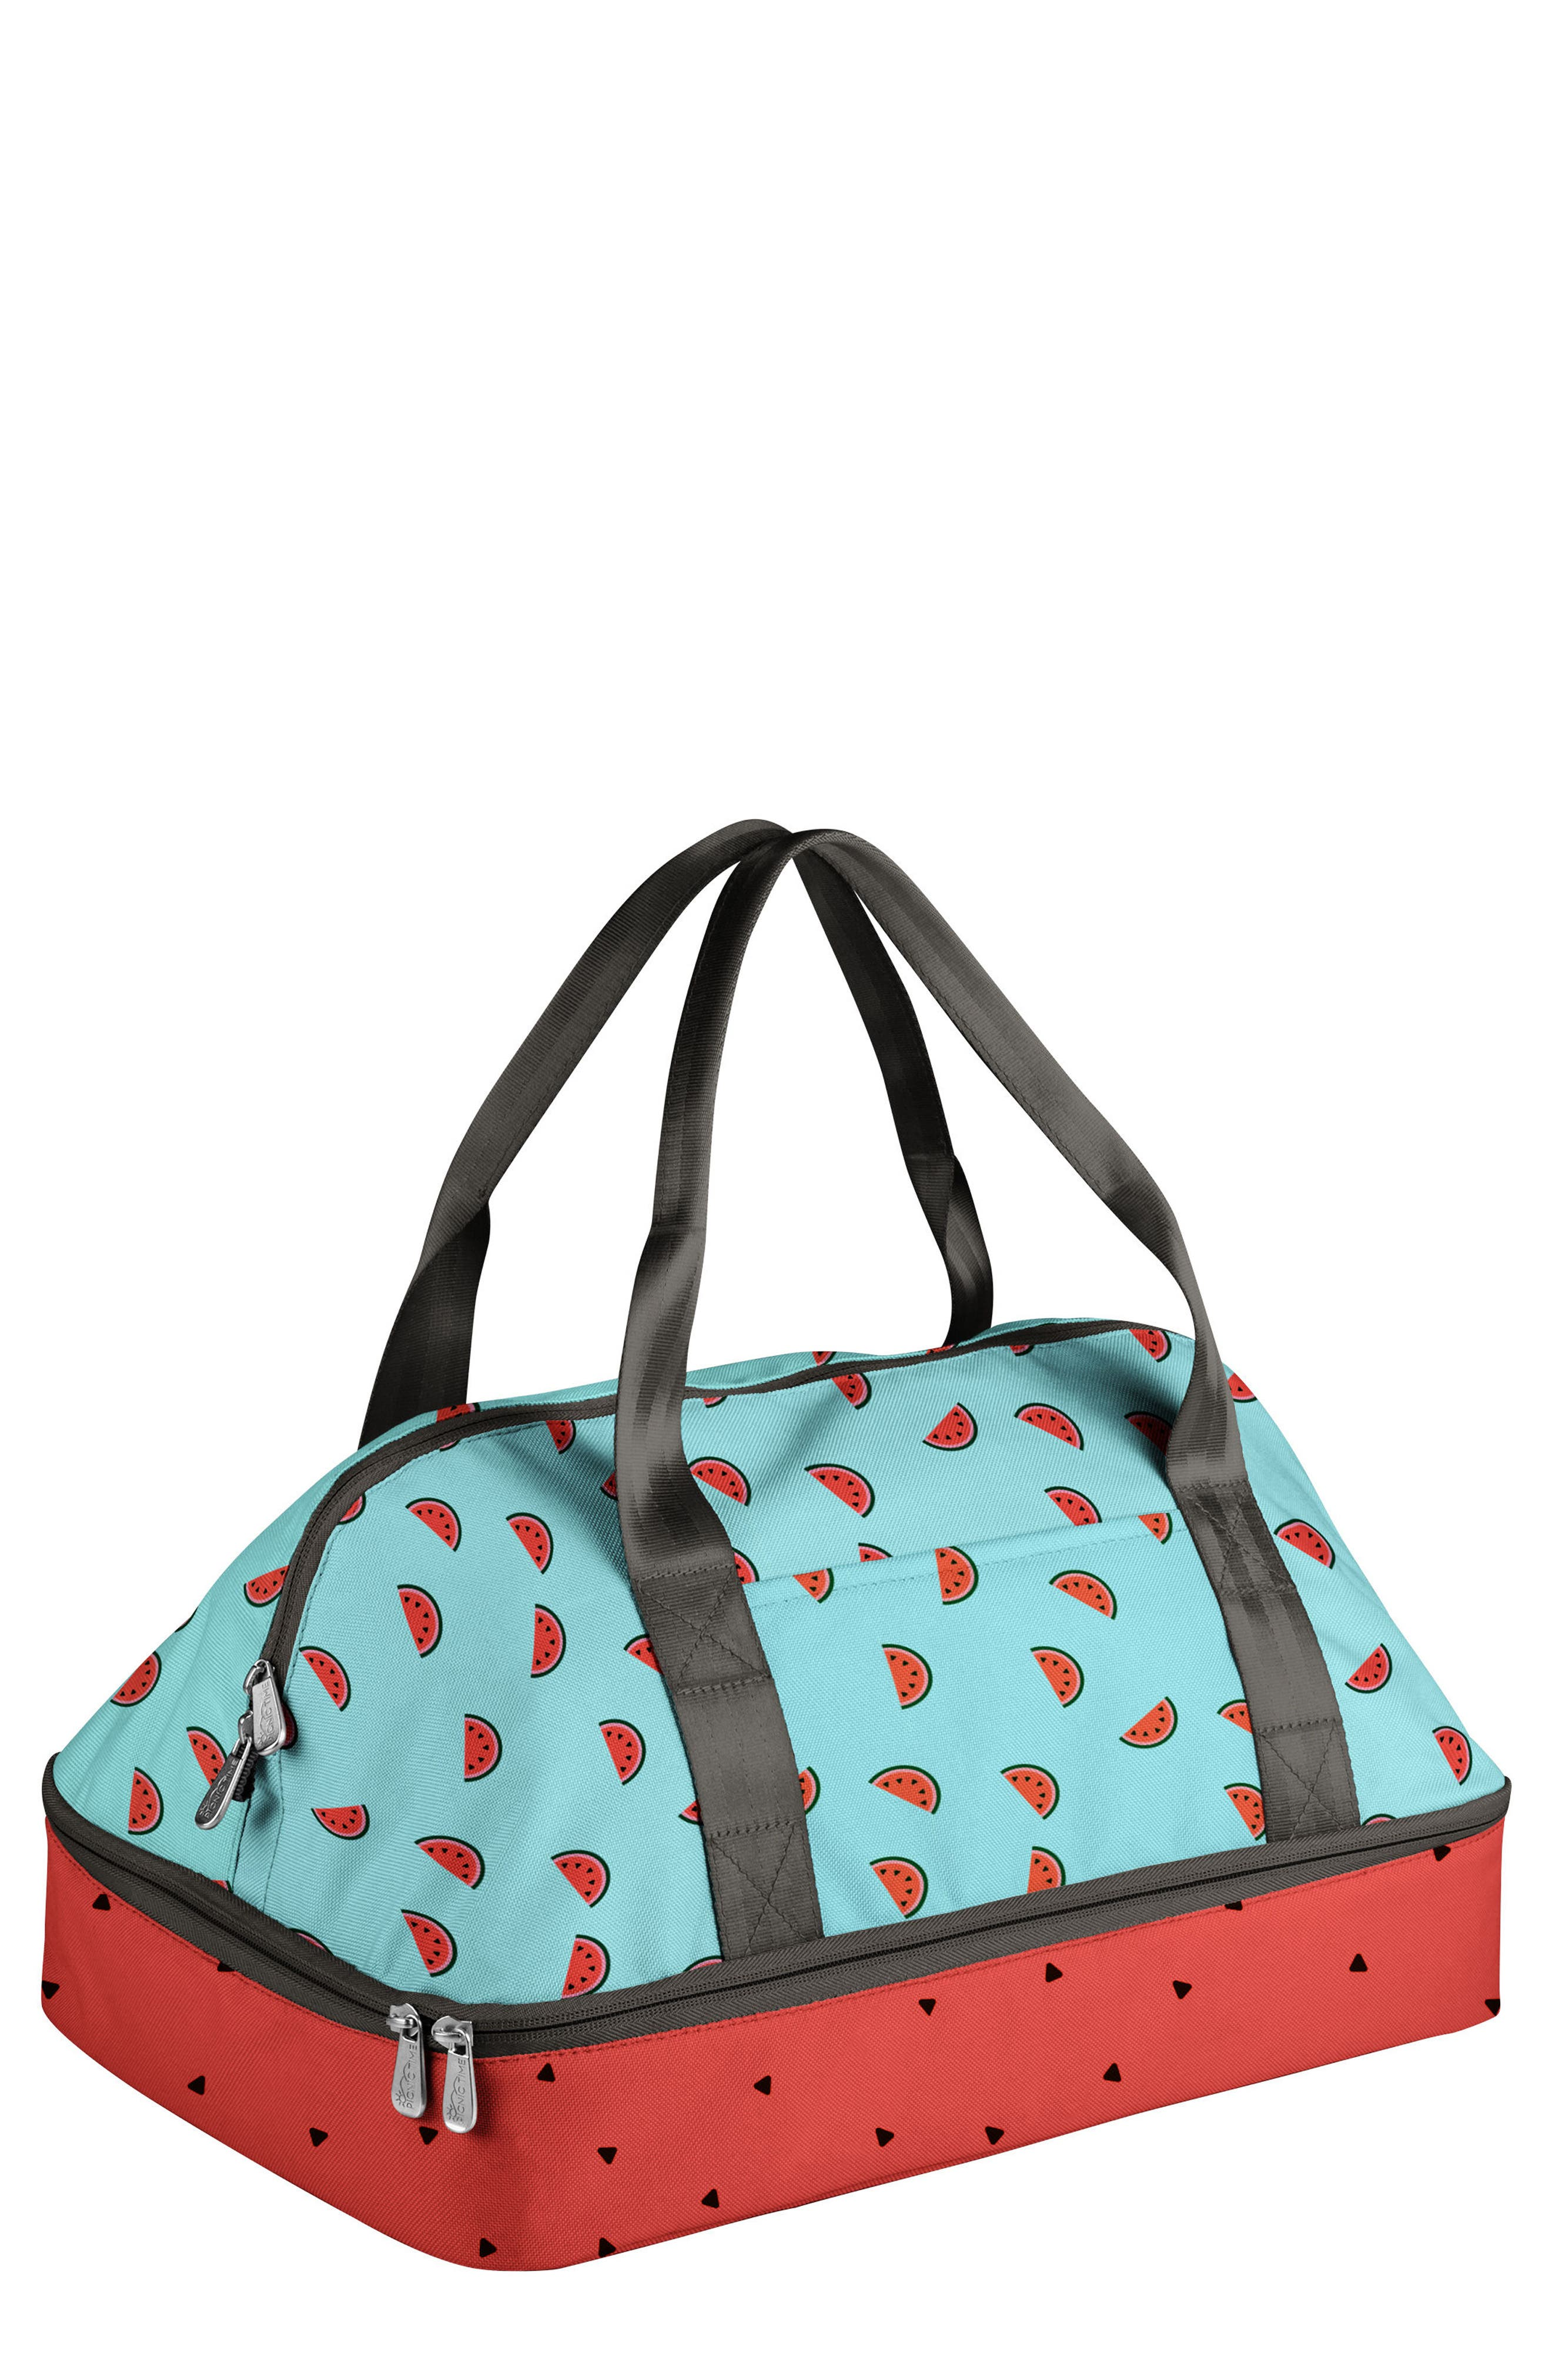 'Potluck' Casserole Tote,                             Main thumbnail 1, color,                             BLUE WATERMELON